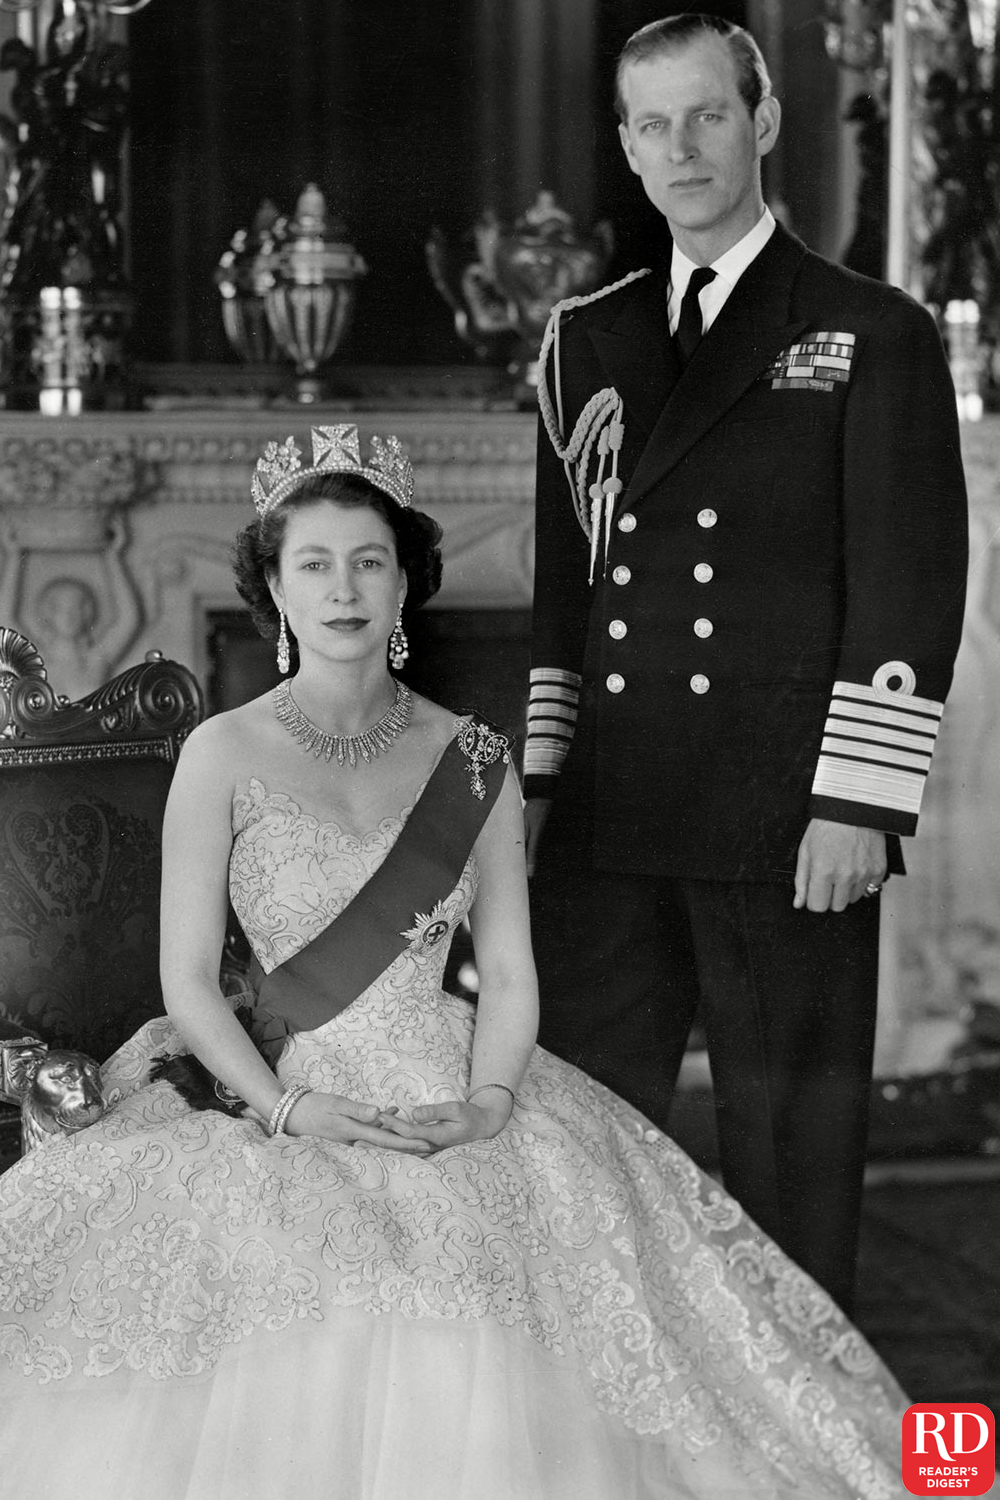 12 Royals Who Married Their Relatives Royal, Married